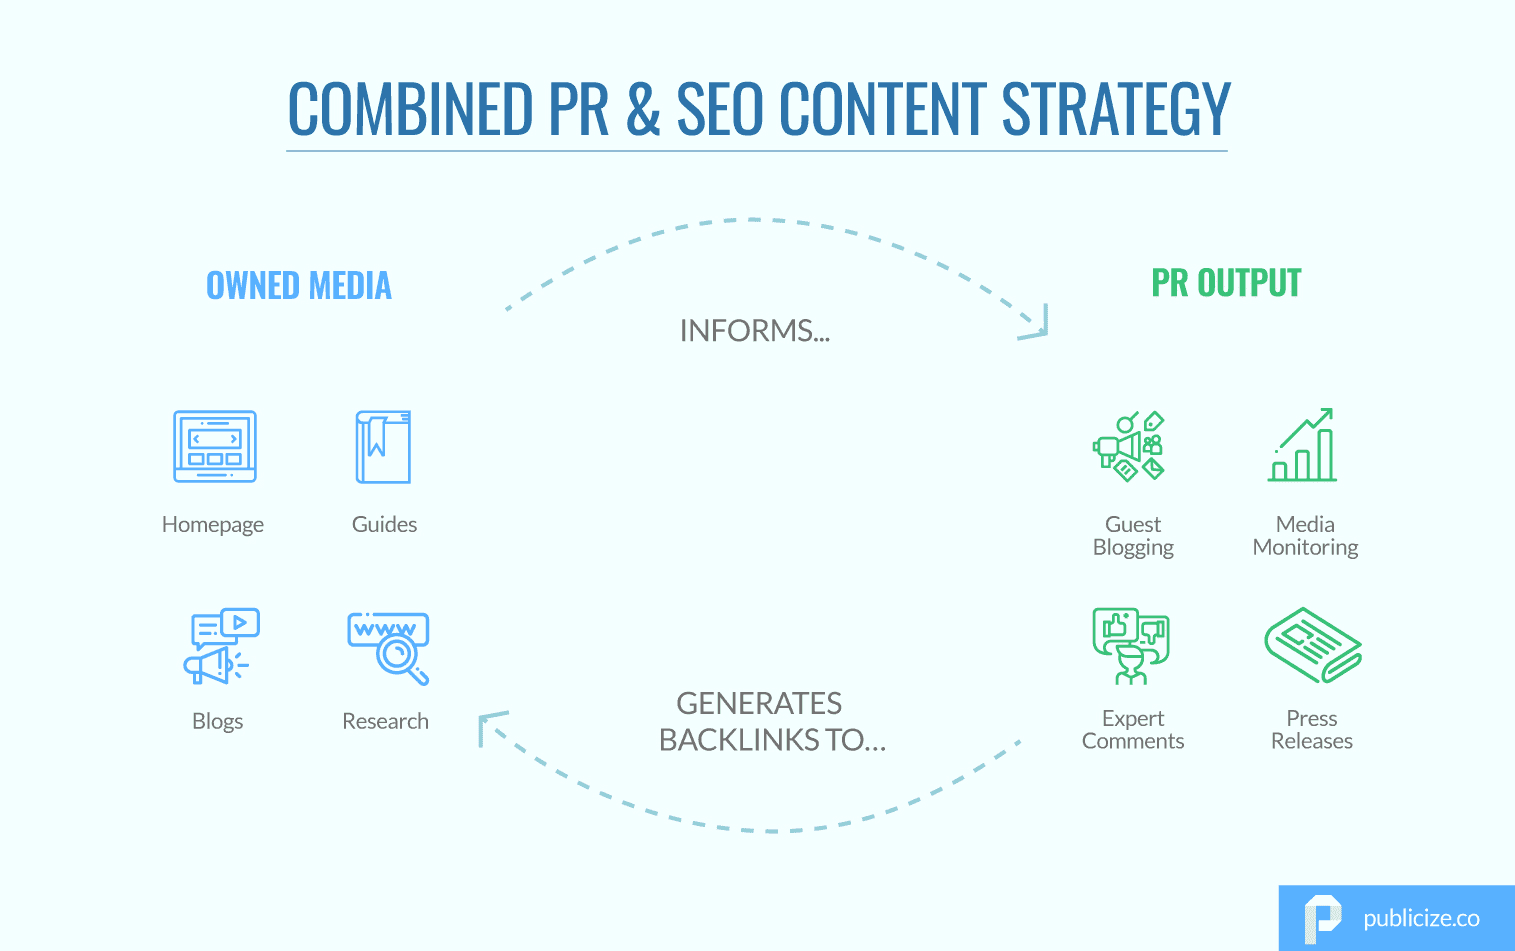 Combined PR and SEO content strategy infographic